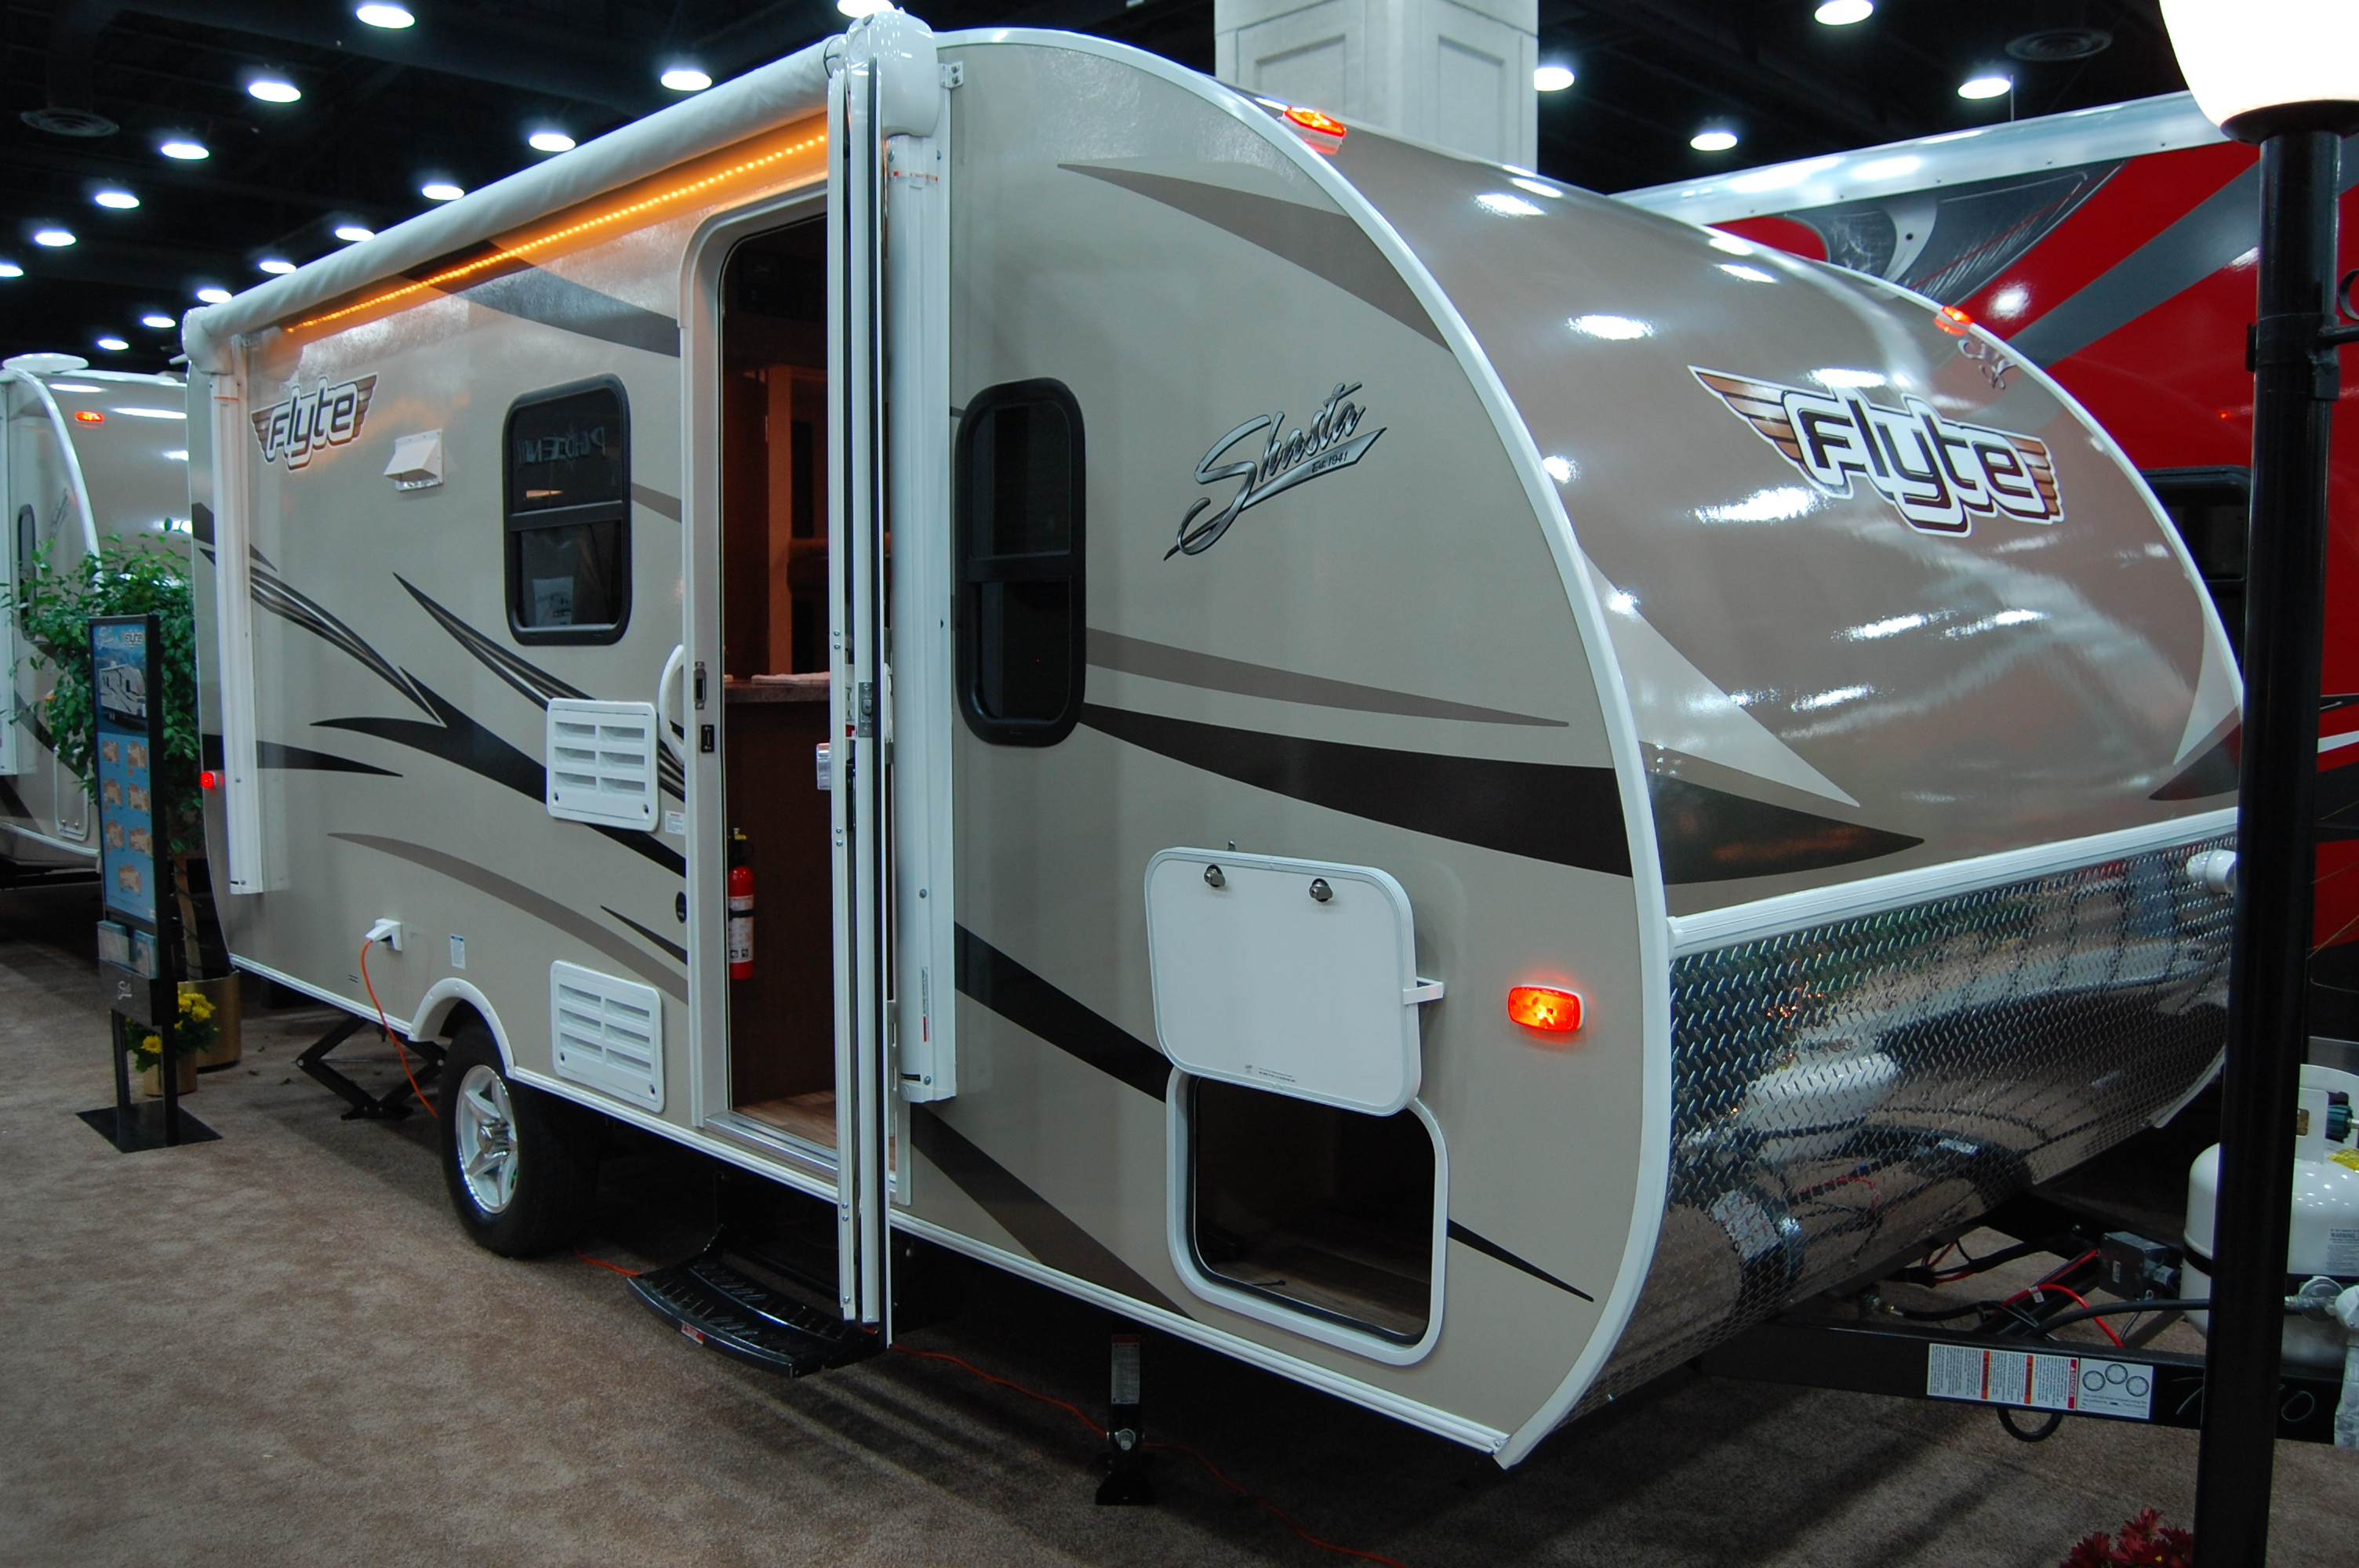 camper the small trailer enthusiast